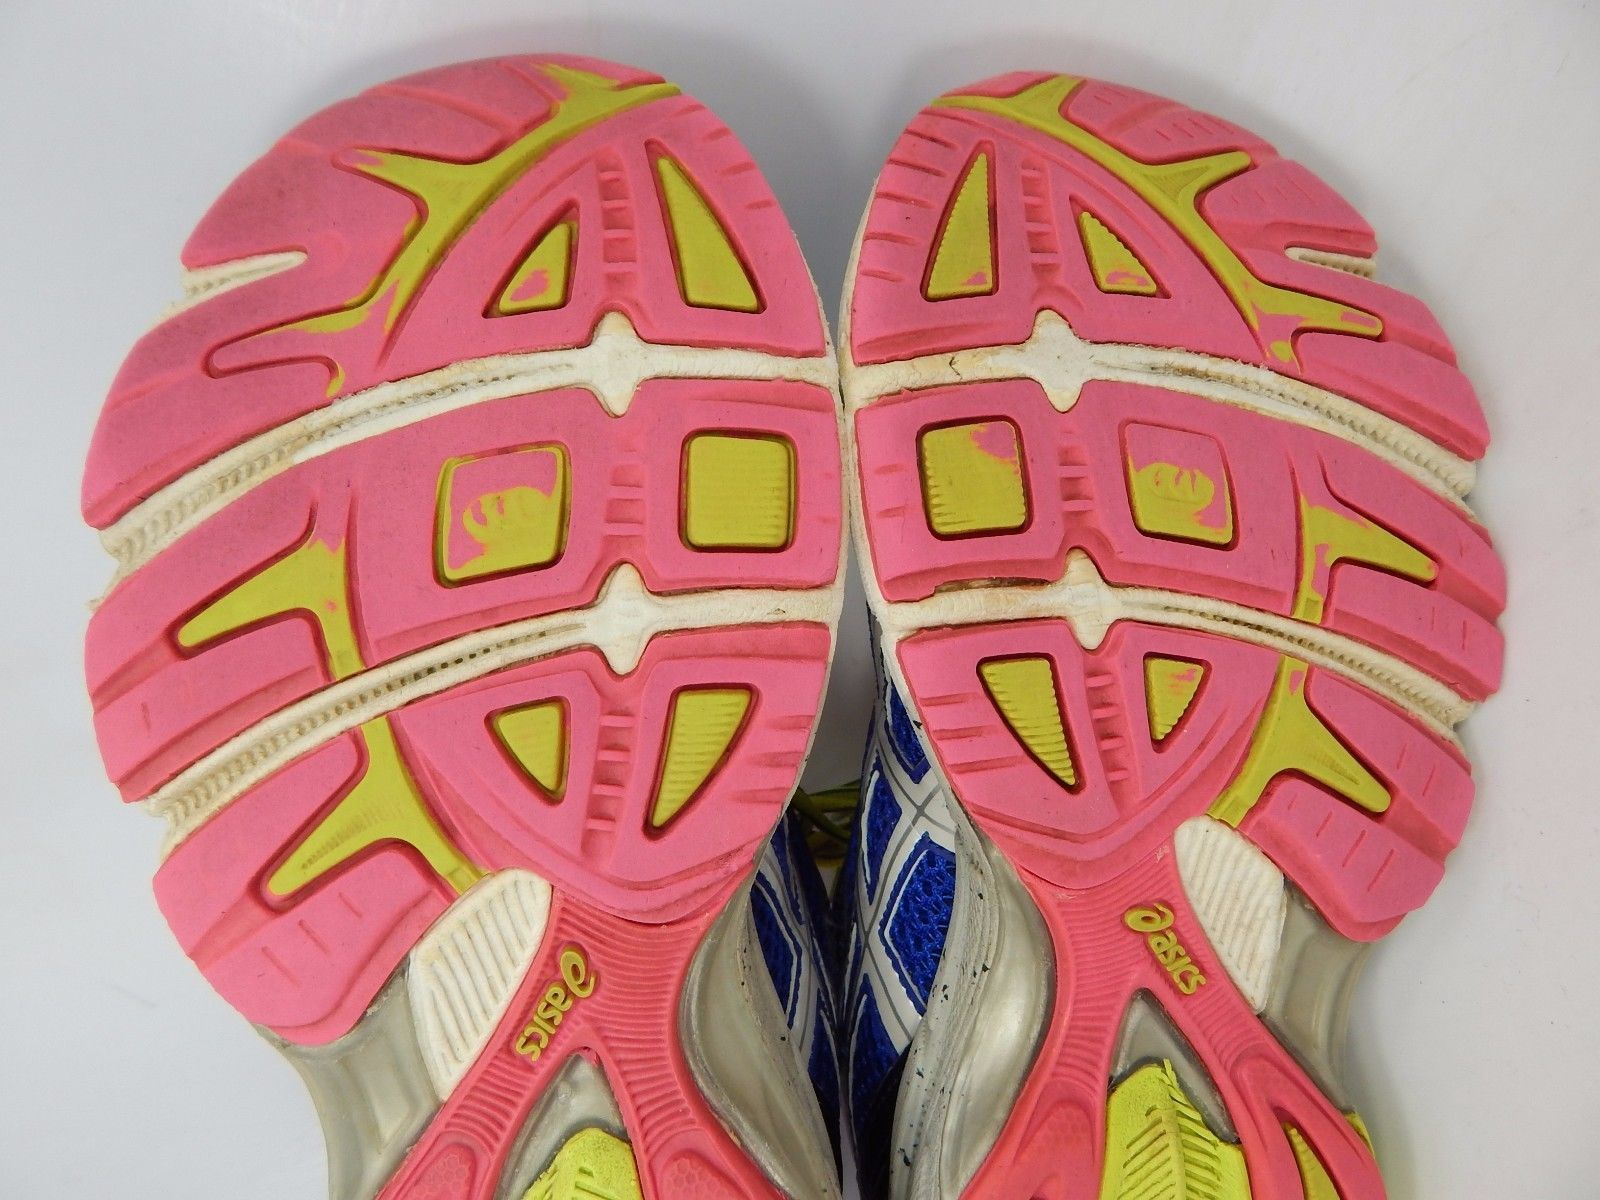 Asics Gel Exalt Women's Running Shoes Size US 7.5 M (B) EU 39 Blue T379Q